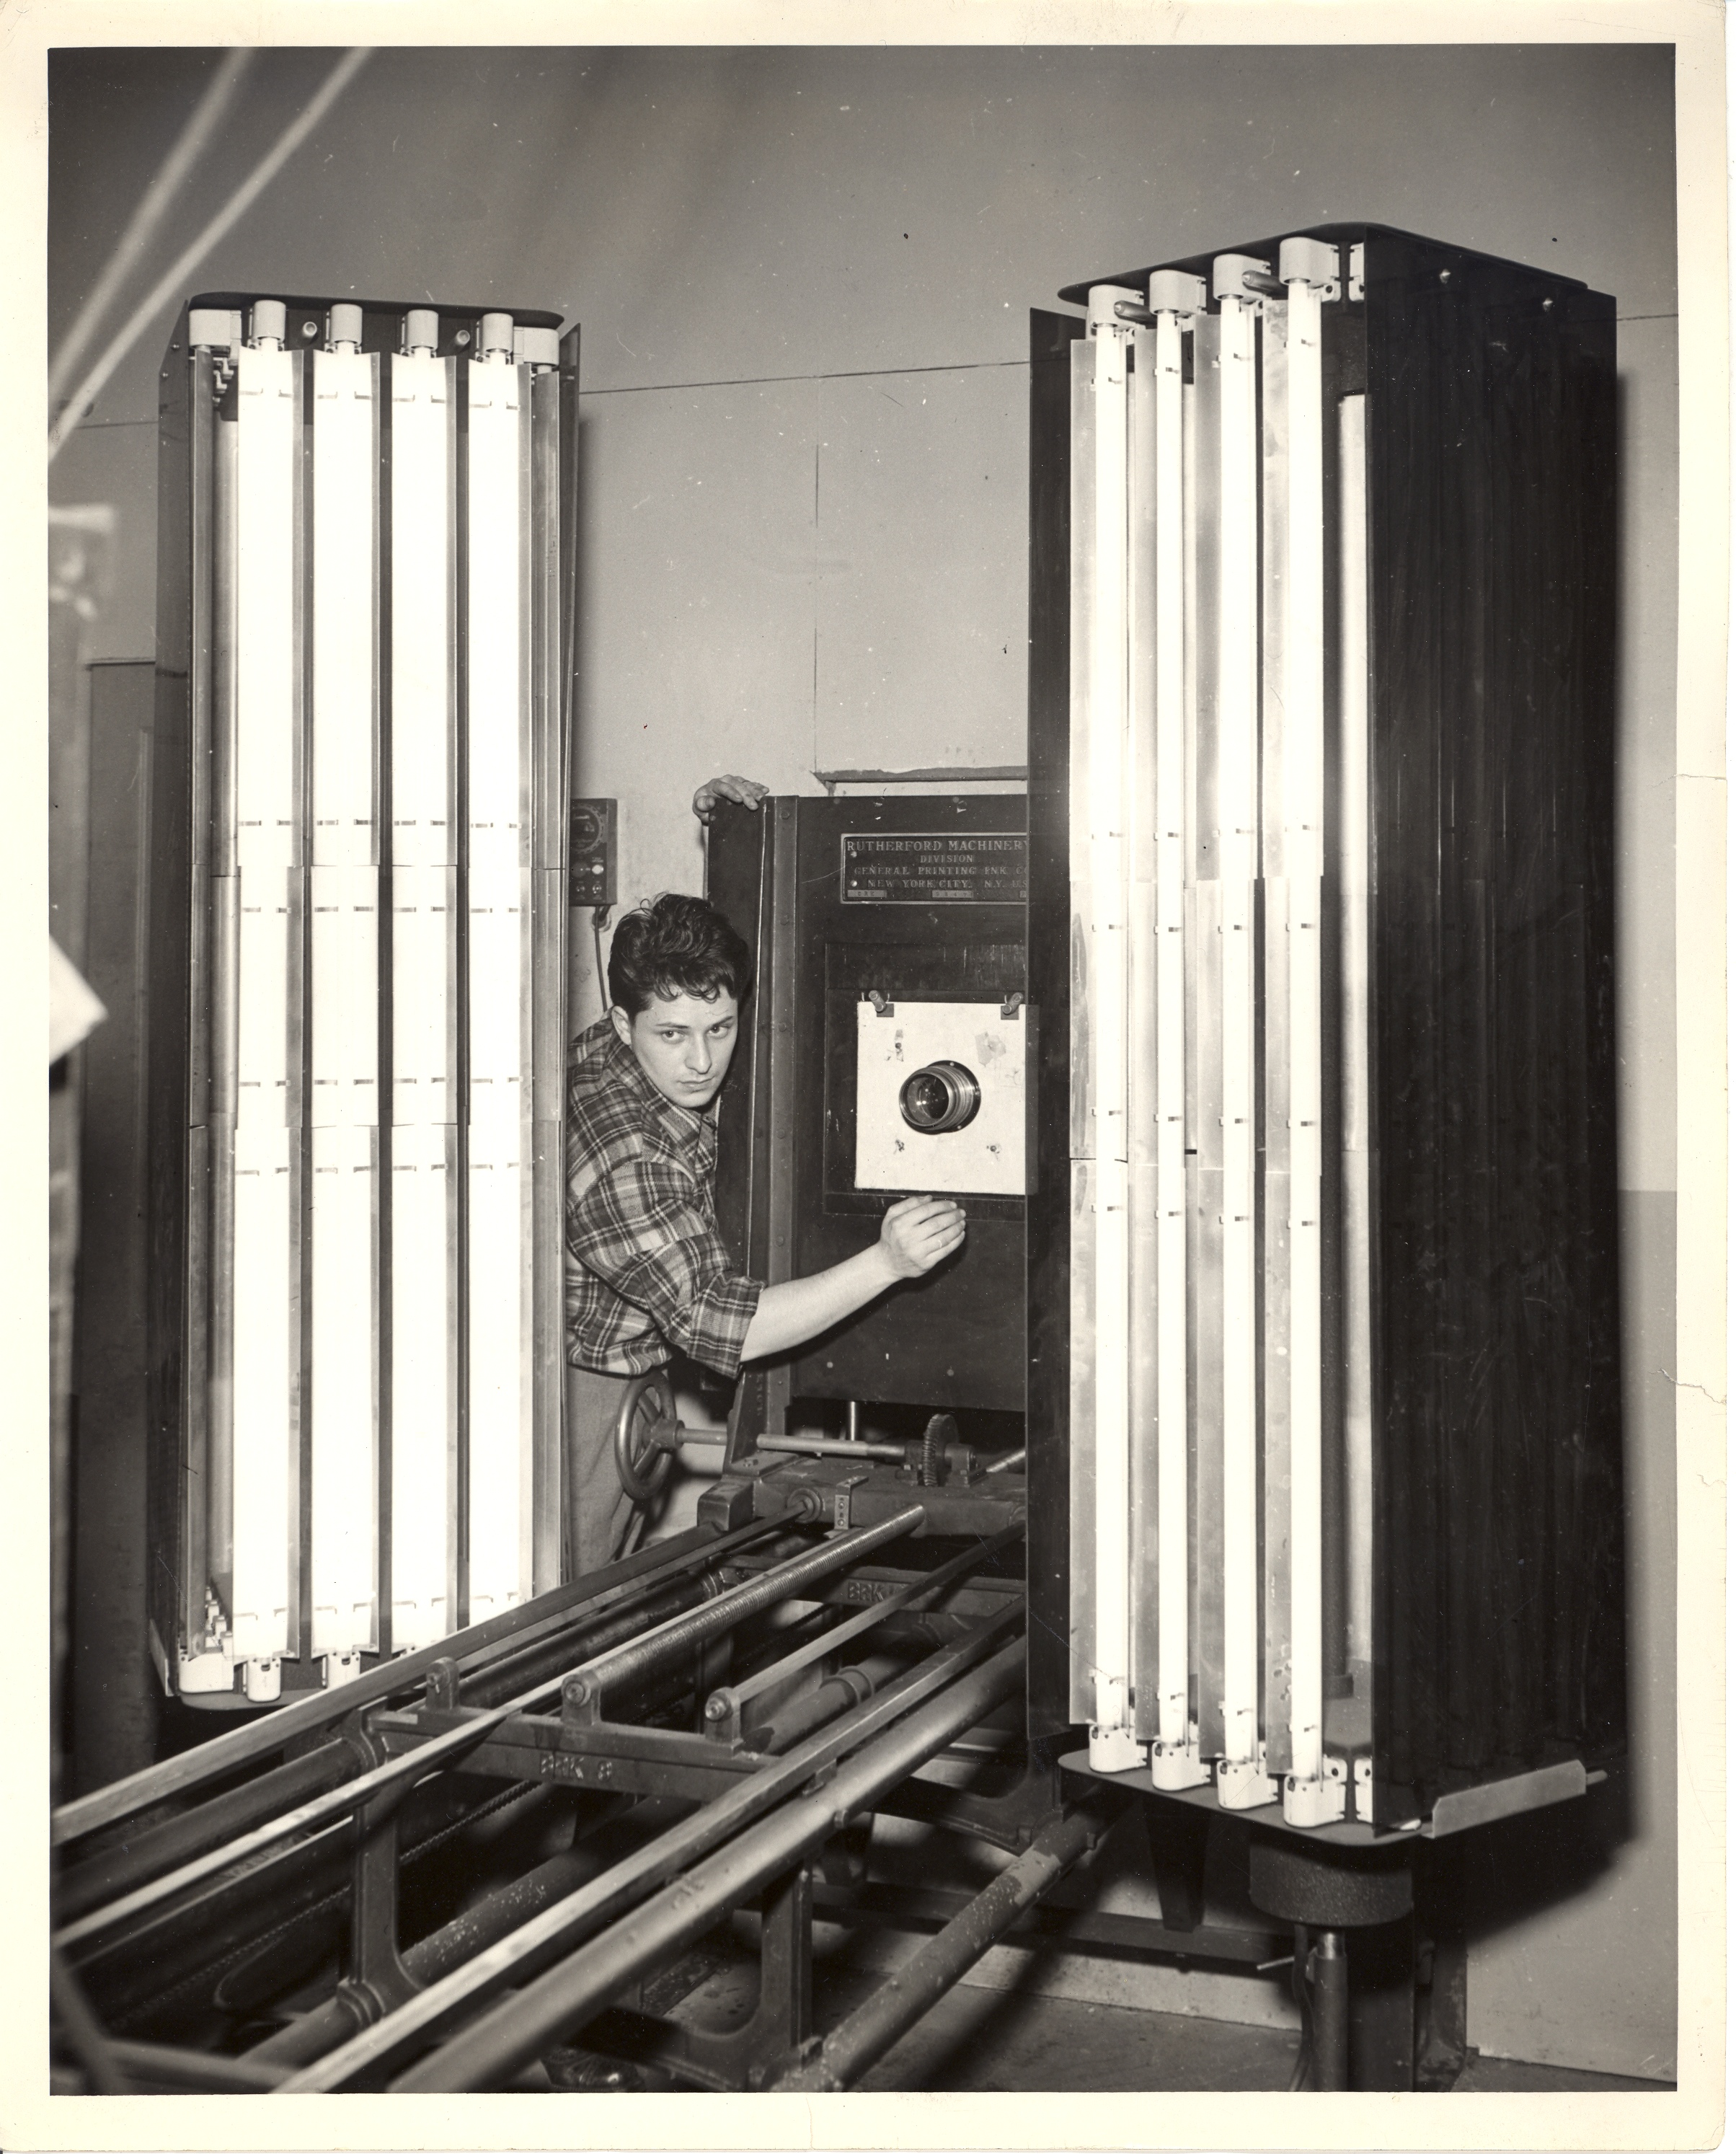 A lithography student at the New York Trade School is shown working on a machine. Black and white photograph.